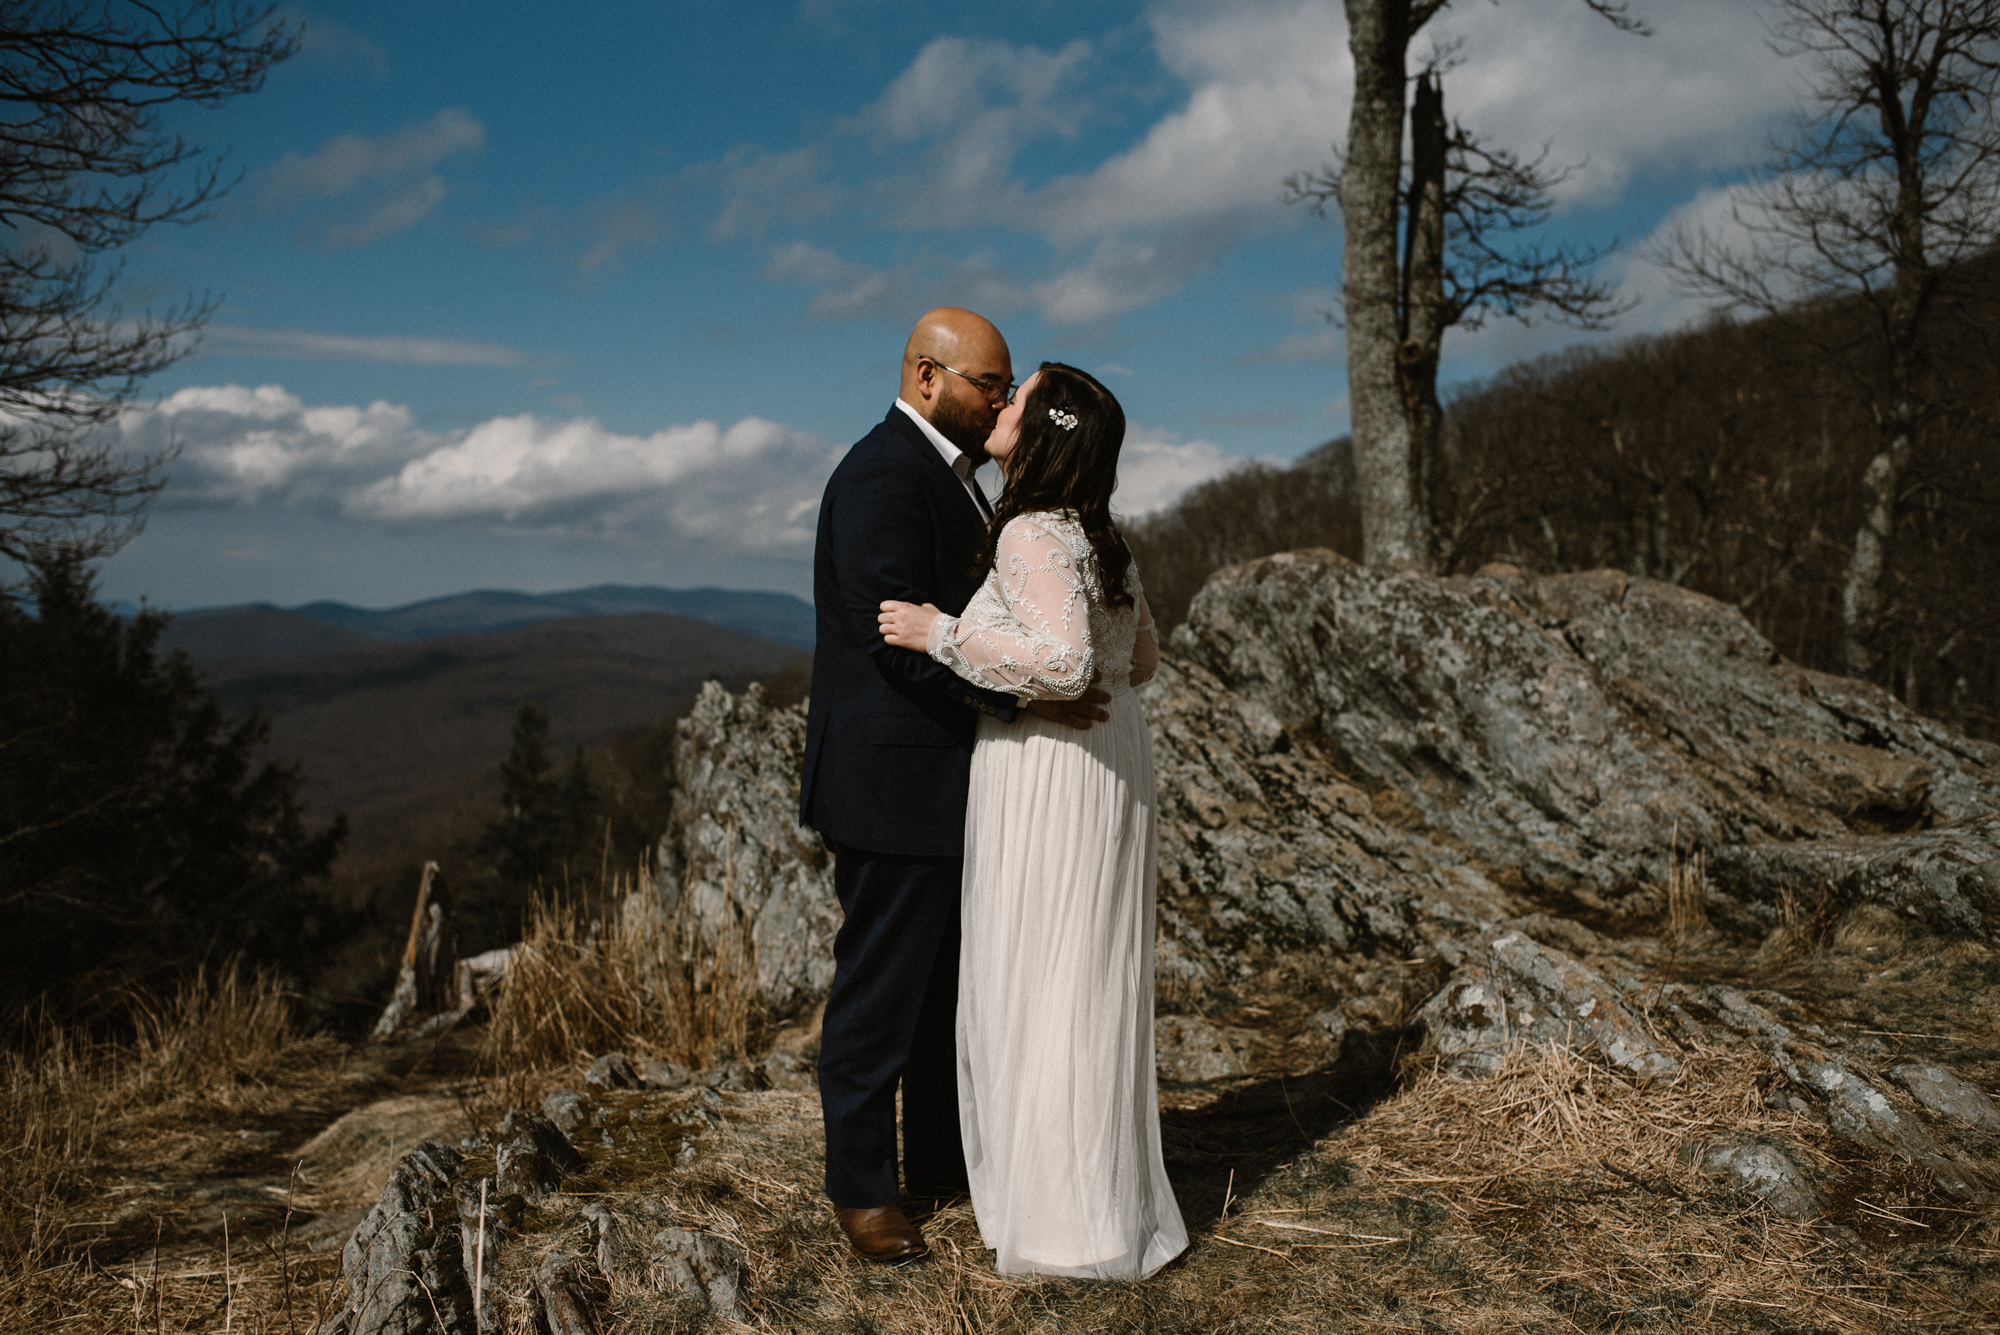 Emma and Jeddah - Intimate Luray Wedding - Shenandoah National Park Wedding - Adventure Elopement in Virginia - Shenandoah National Park Elopement_28.jpg